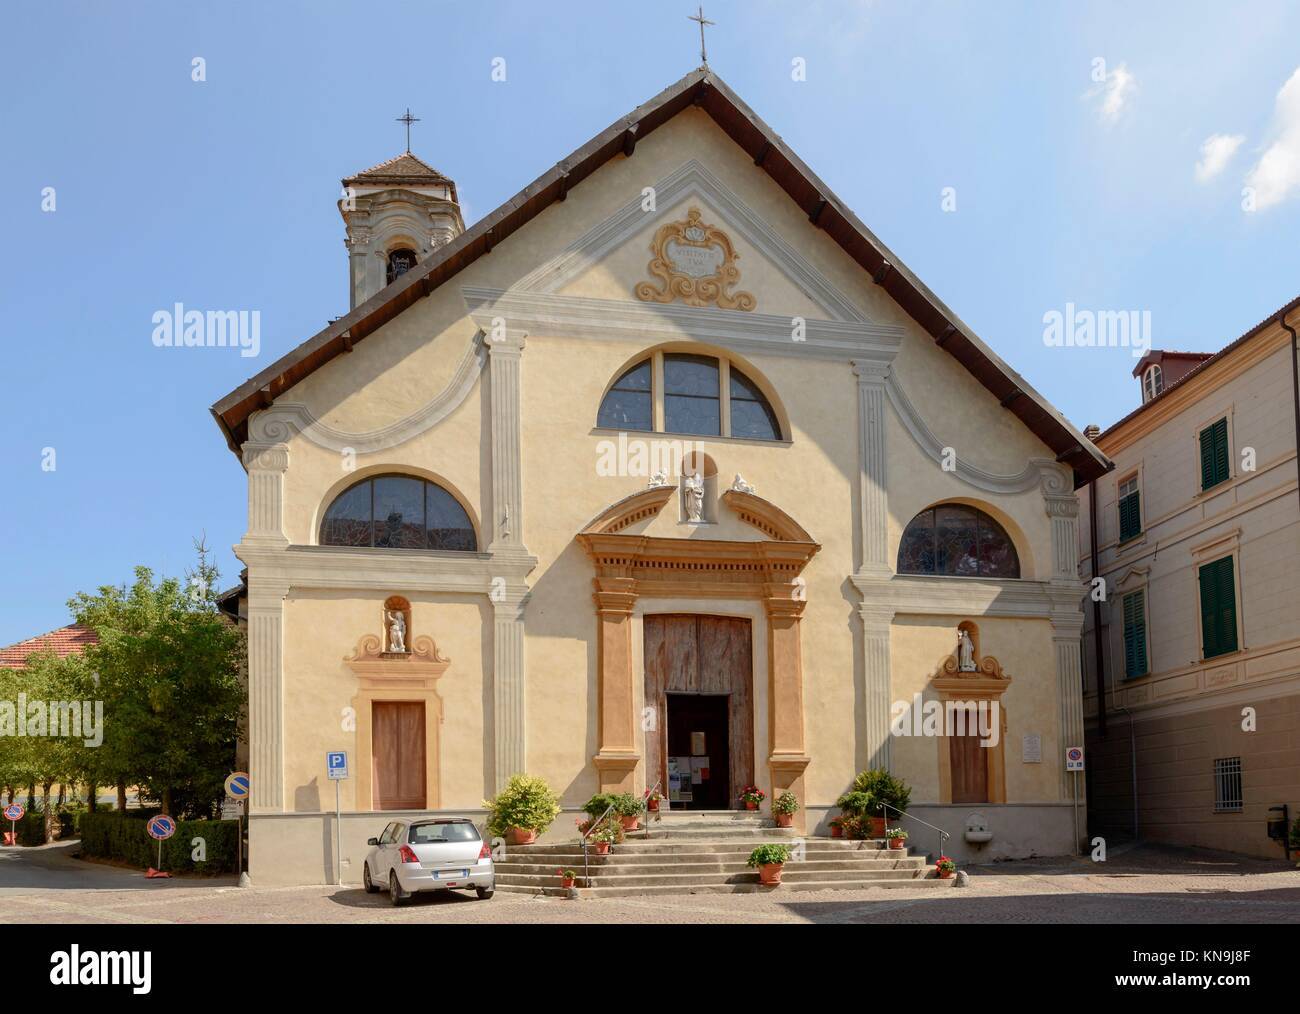 facade of ancient church of Immacolata in Sasello village, Ligure inland, Italy. - Stock Image